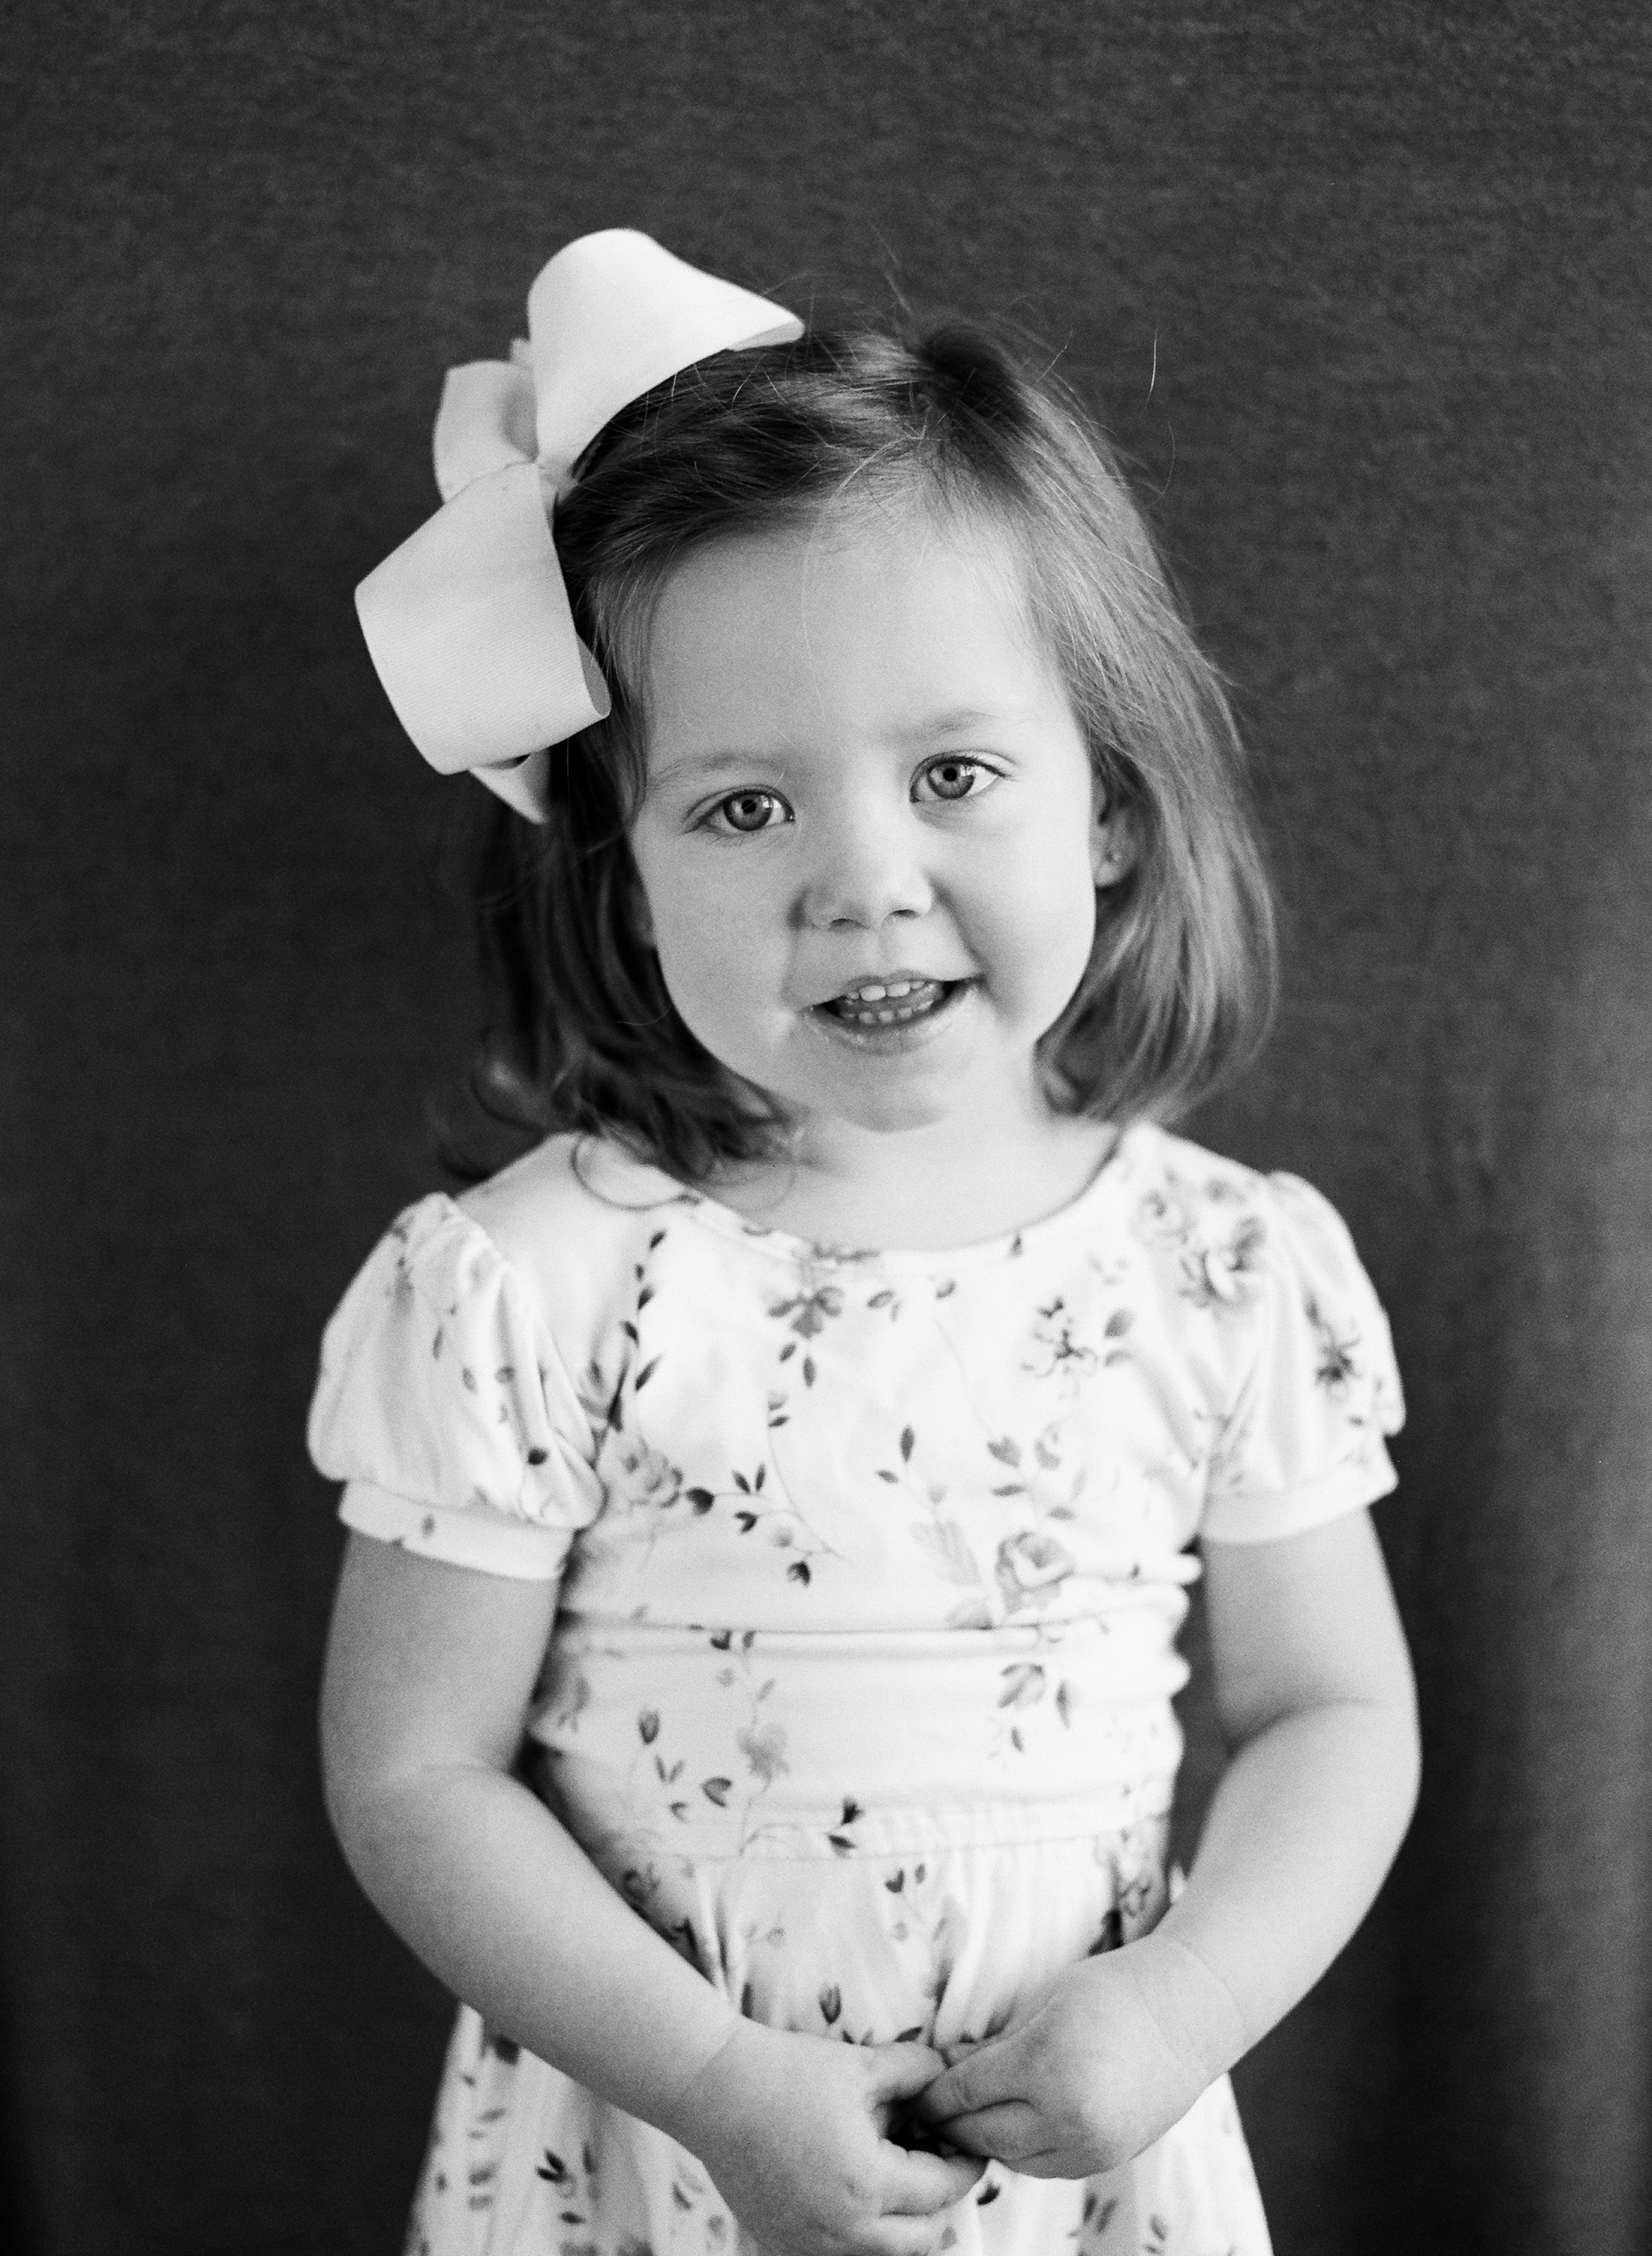 nashville-franklin-blackandwhite-childrens-portraiture-25.JPG